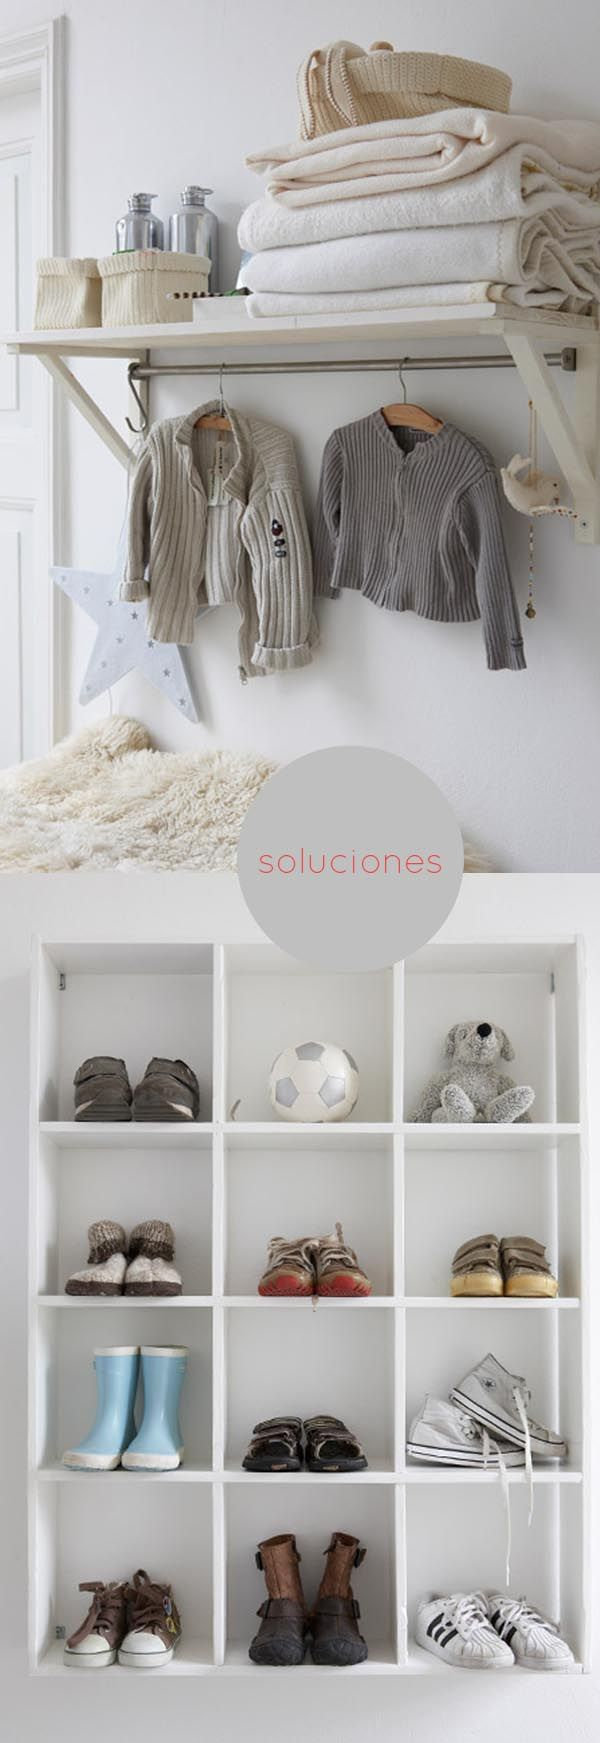 This could work on a deep wardrobe door